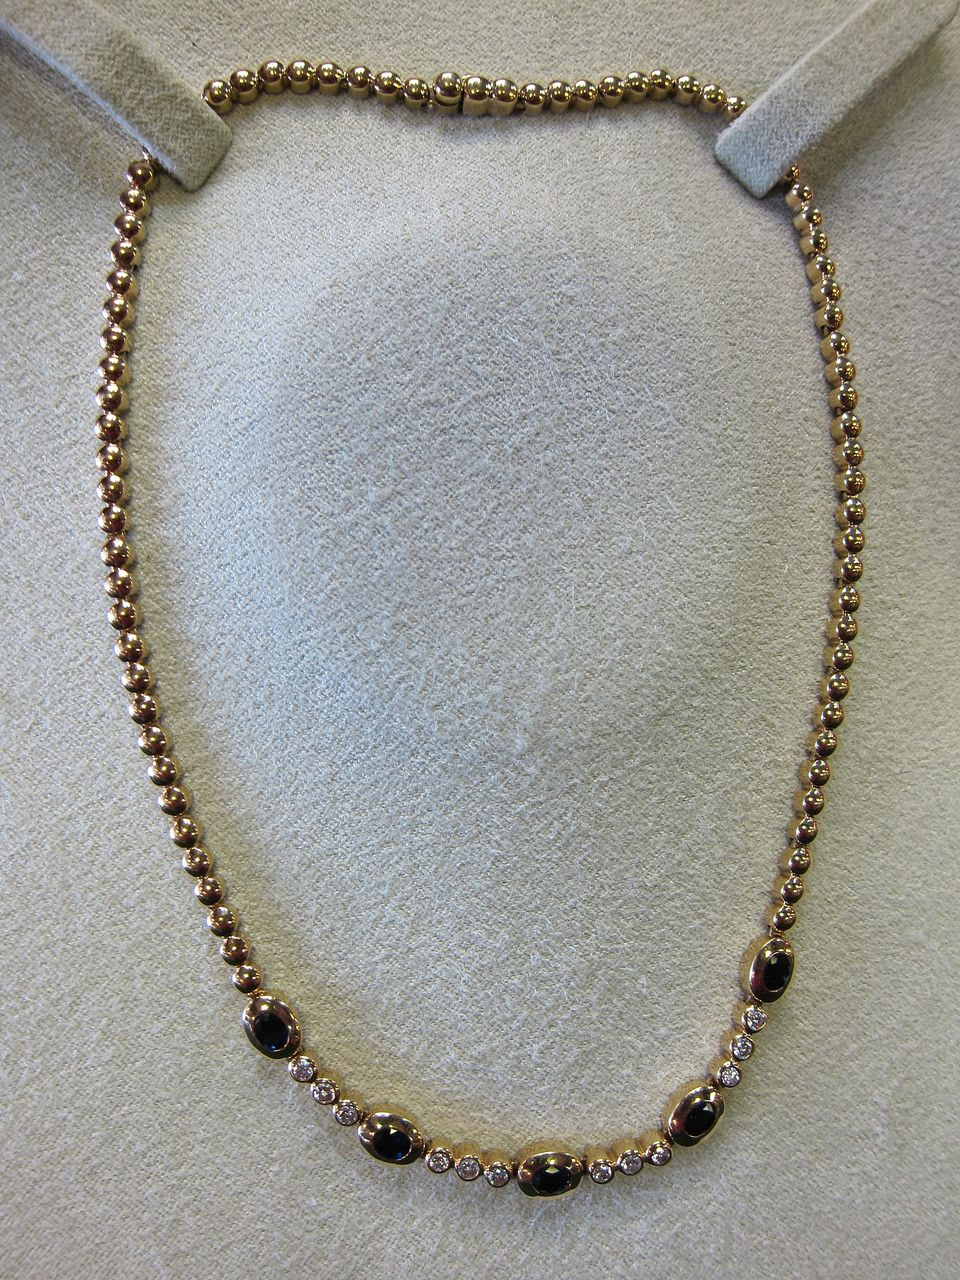 Lady's 14 KT VS Diamond & Sapphire 18 Inch Necklace